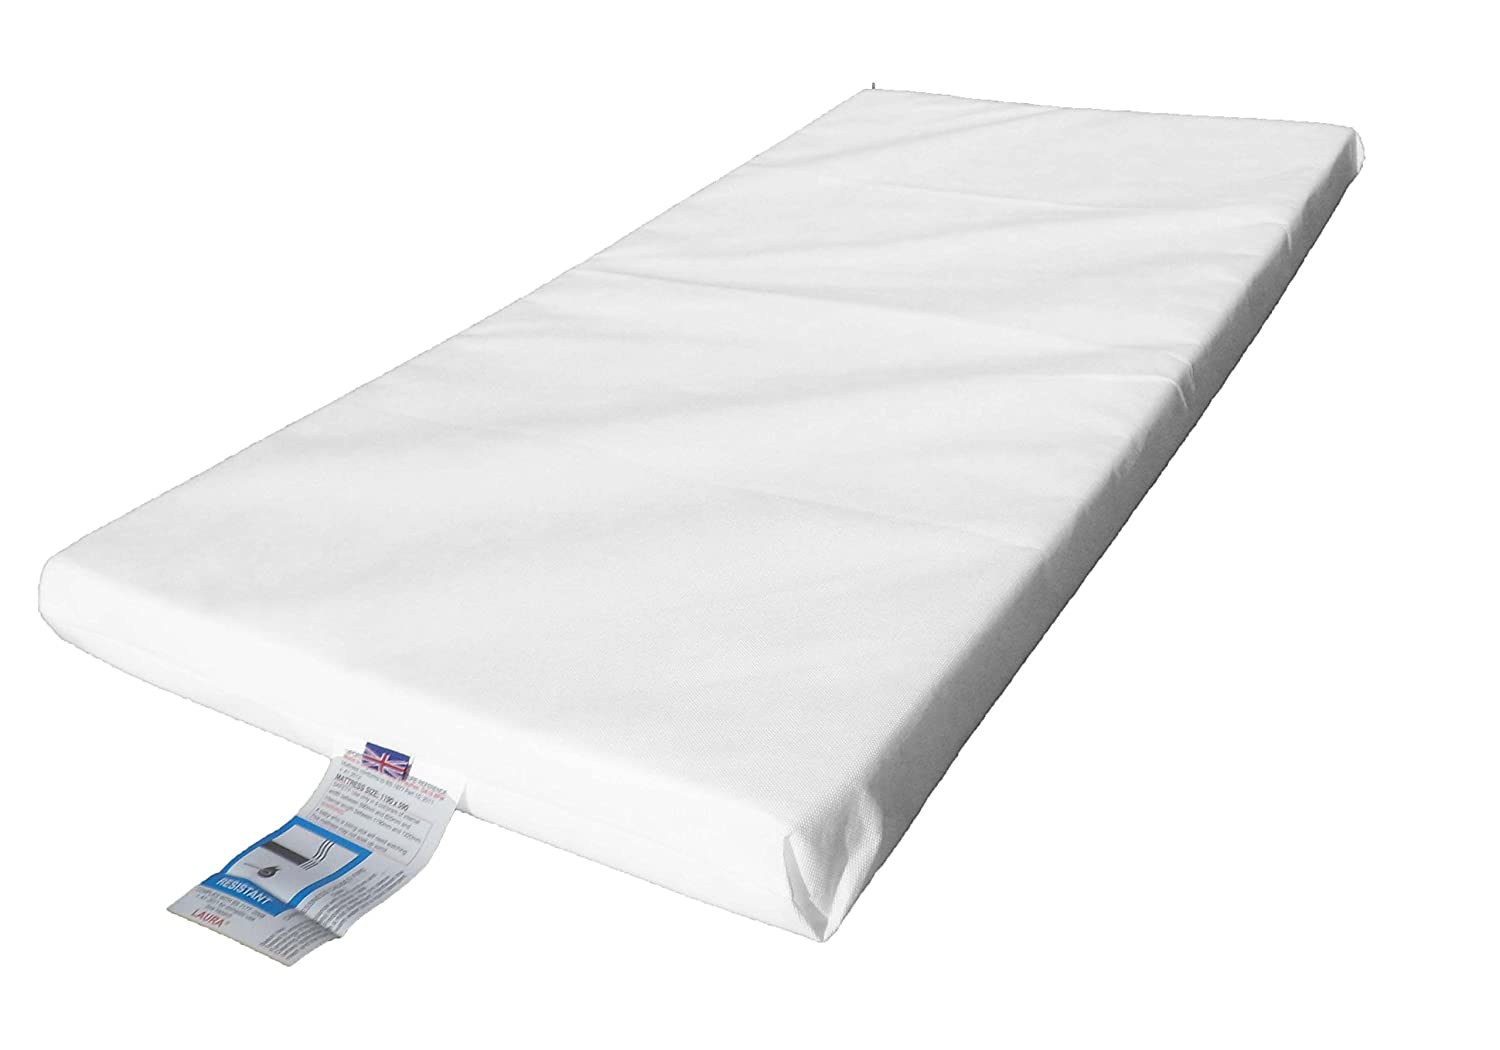 LAURA/® Deluxe Hypo-Allergenic Eco Air Flow Quilted Dual Sided Travel Cot Mattress 95 x 65cm x 7cm Extra Thick British Made